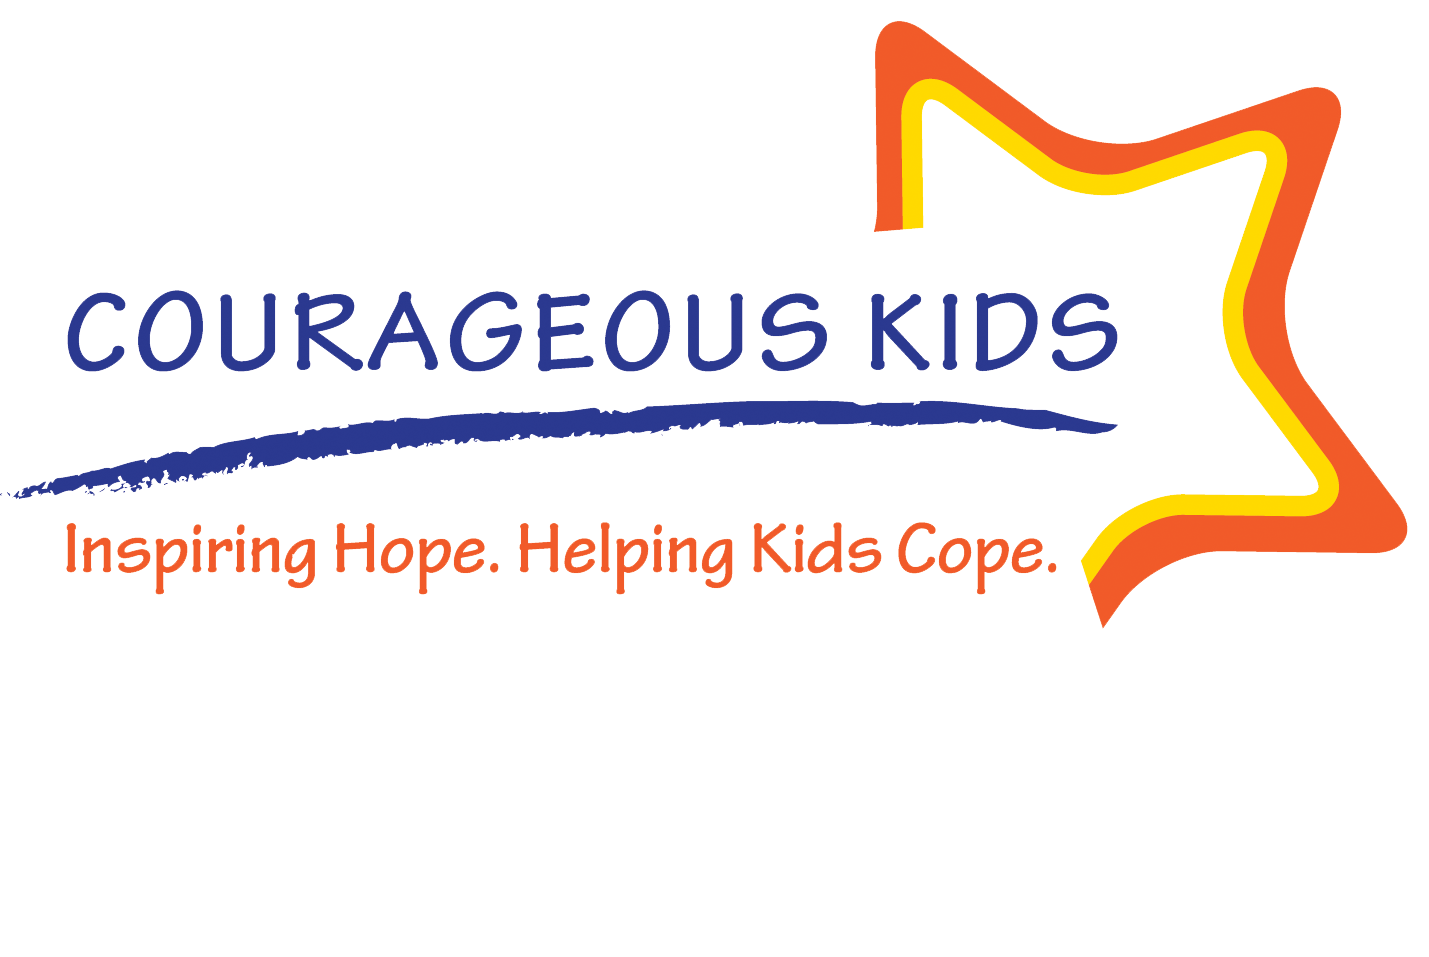 Courageous Kids